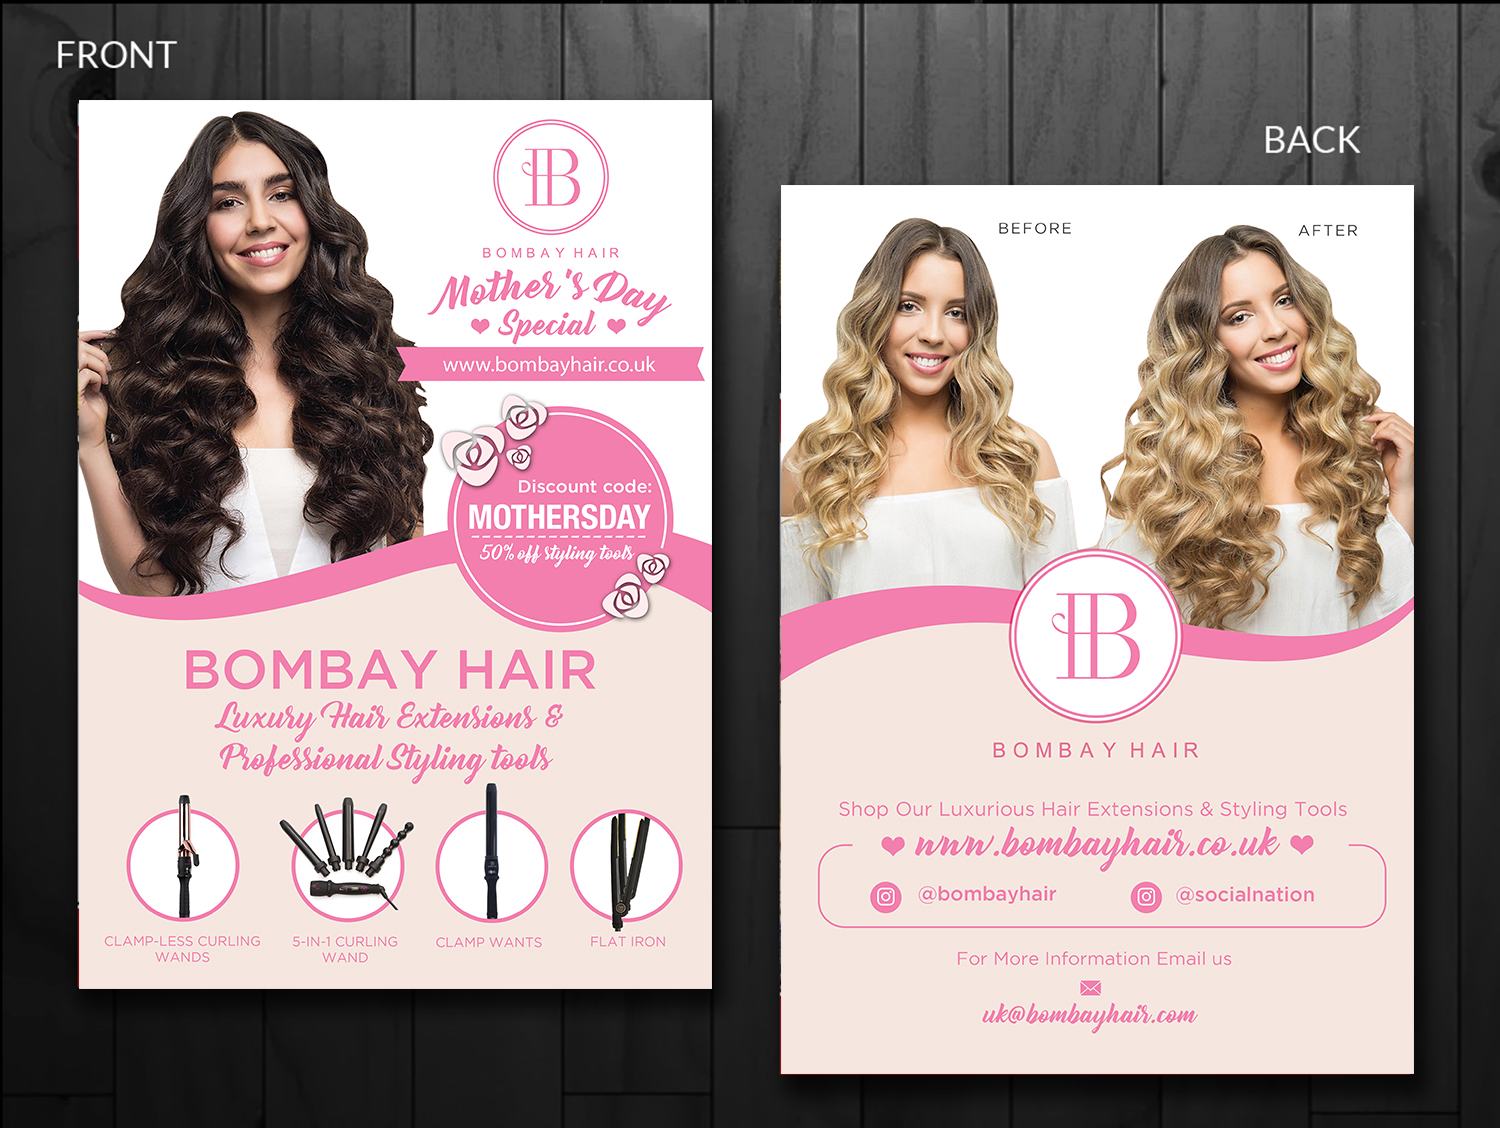 Hair Extensions Company. Need a flyer for upcoming event